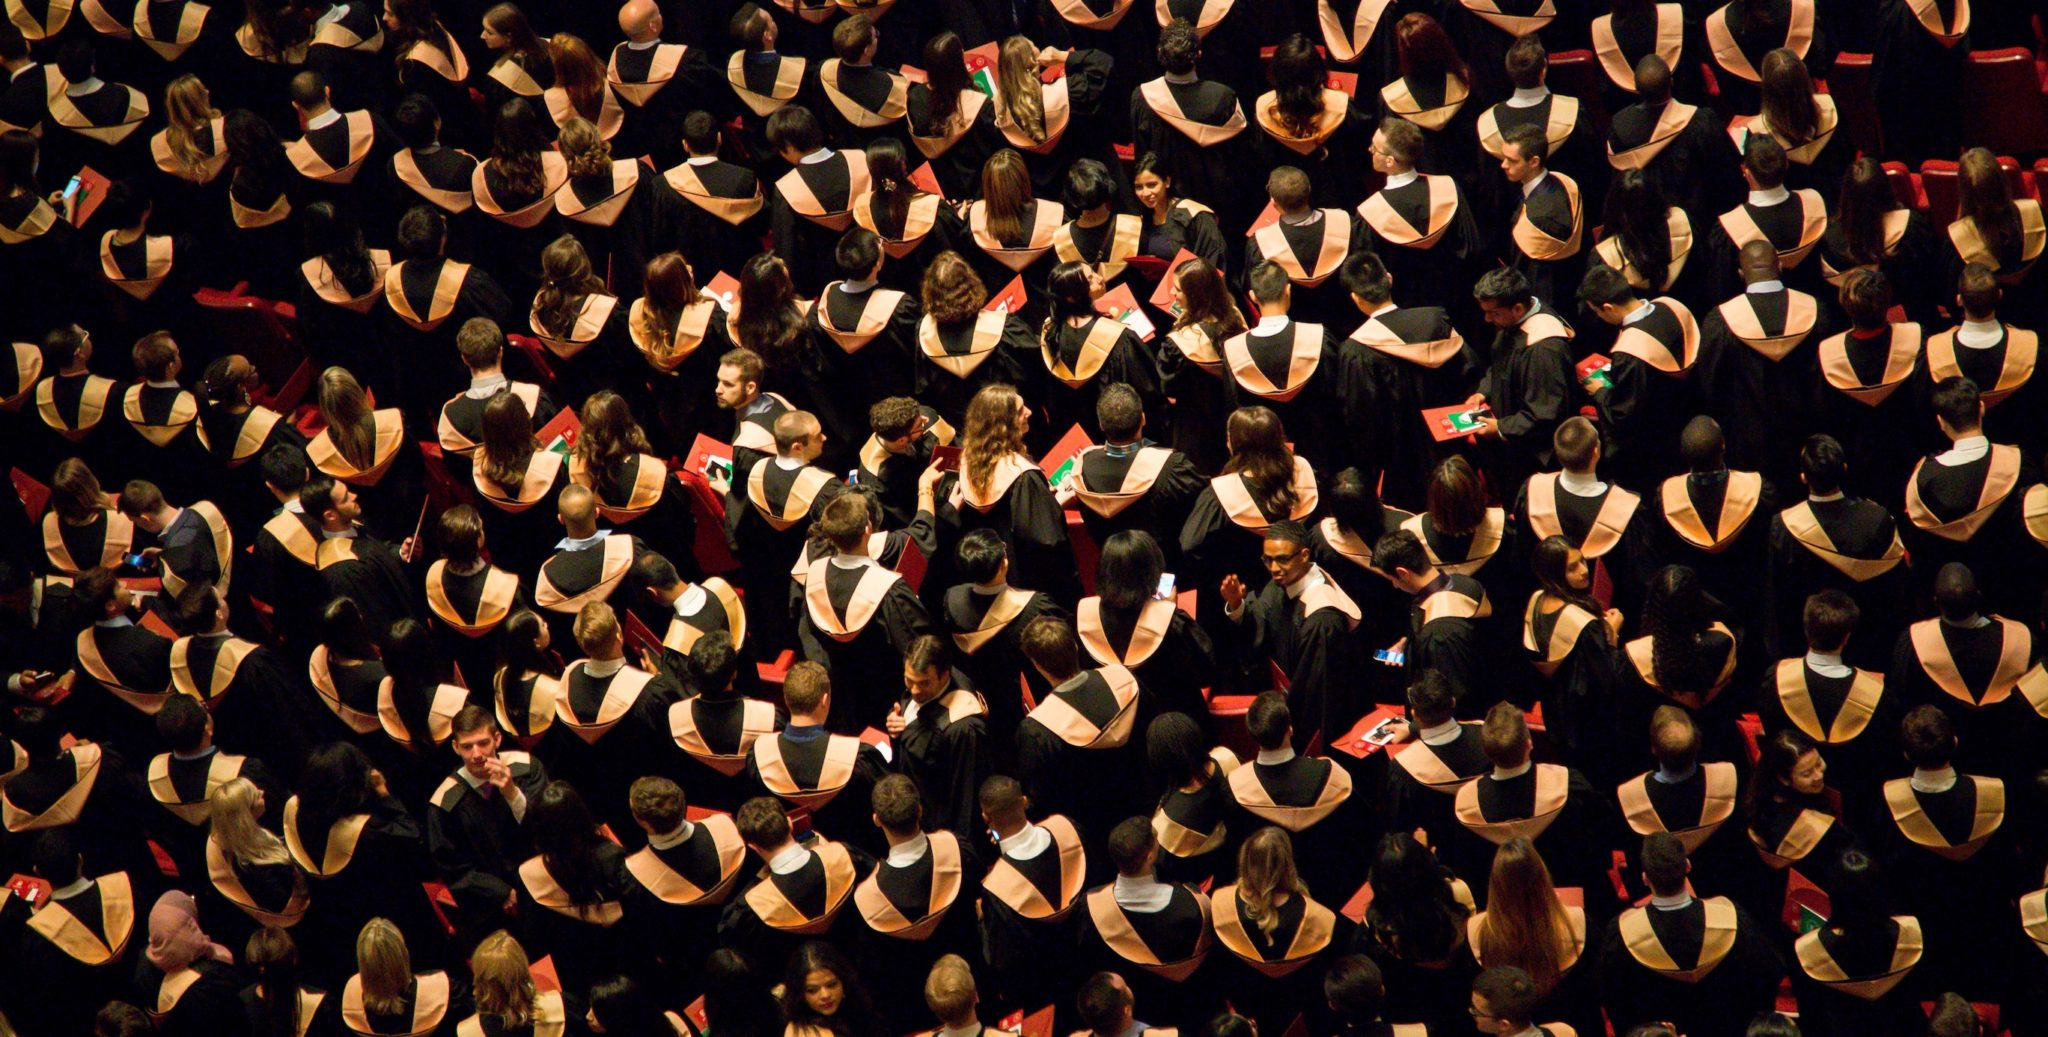 Be sensible with admissions to secure quality, OfS warns